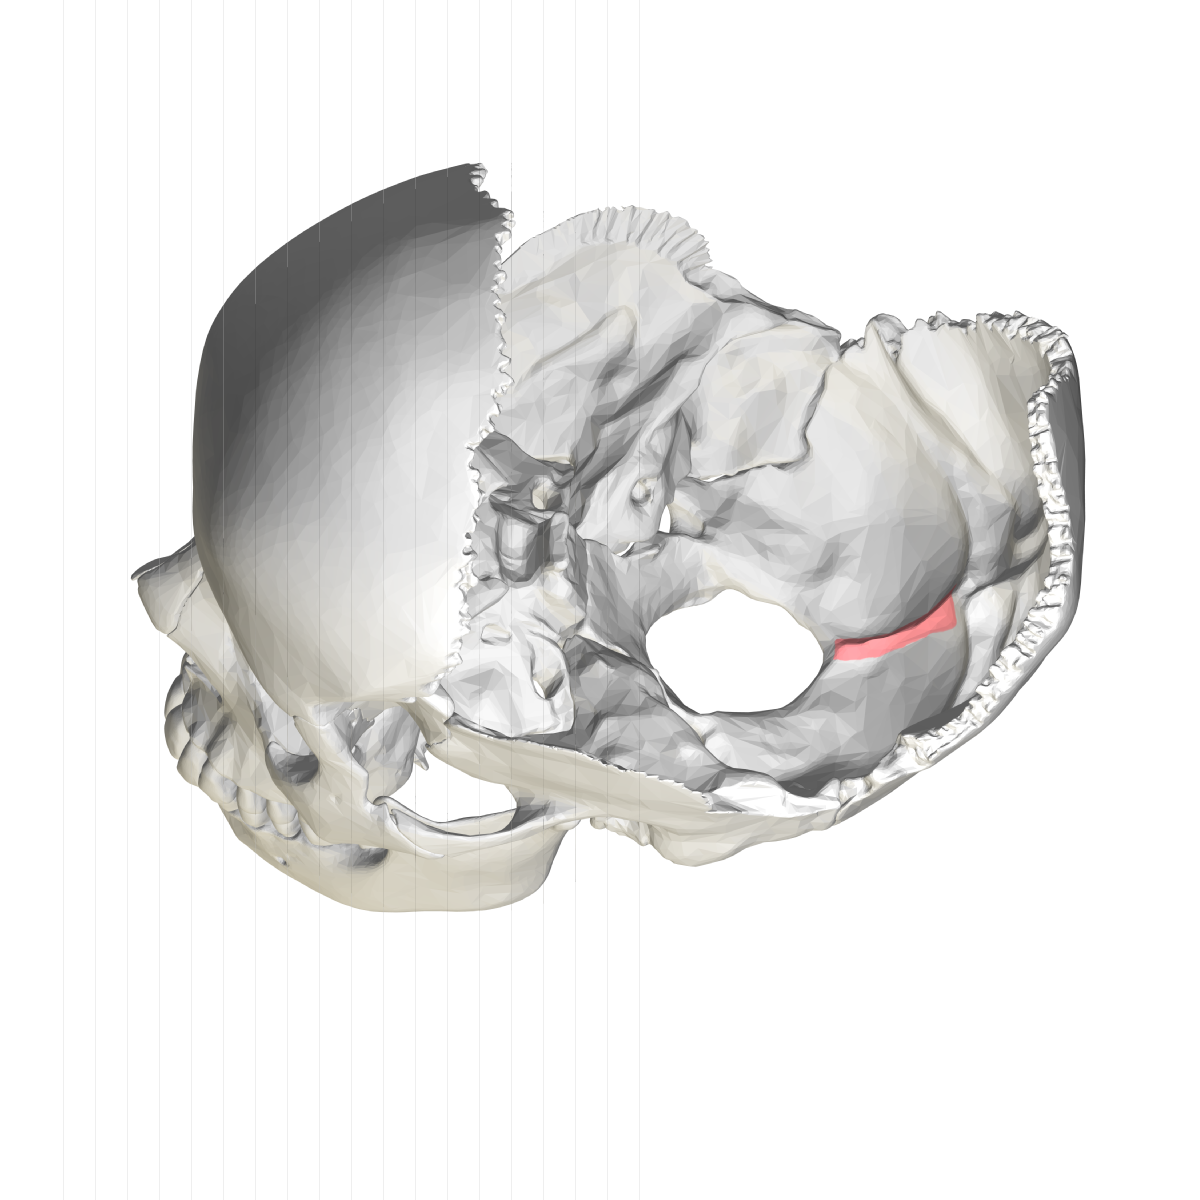 4cb5d0096161c Internal occipital crest - Wikipedia